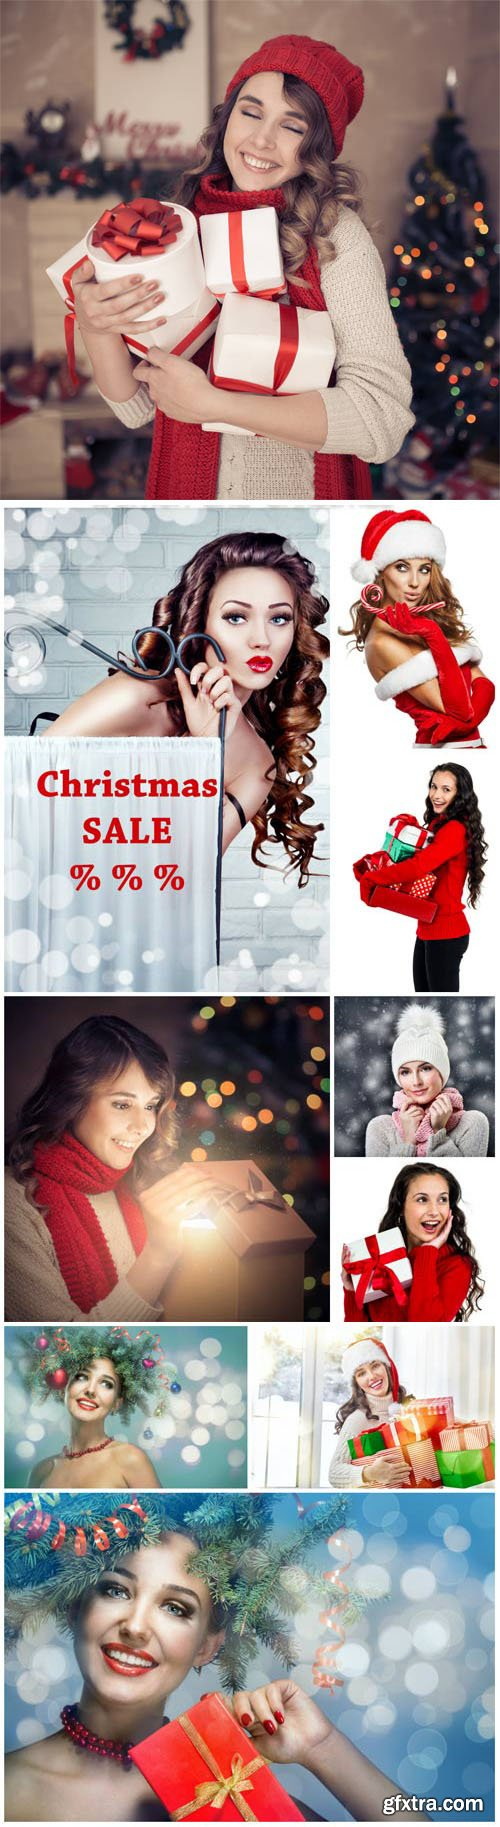 New Year and Christmas stock photos №44